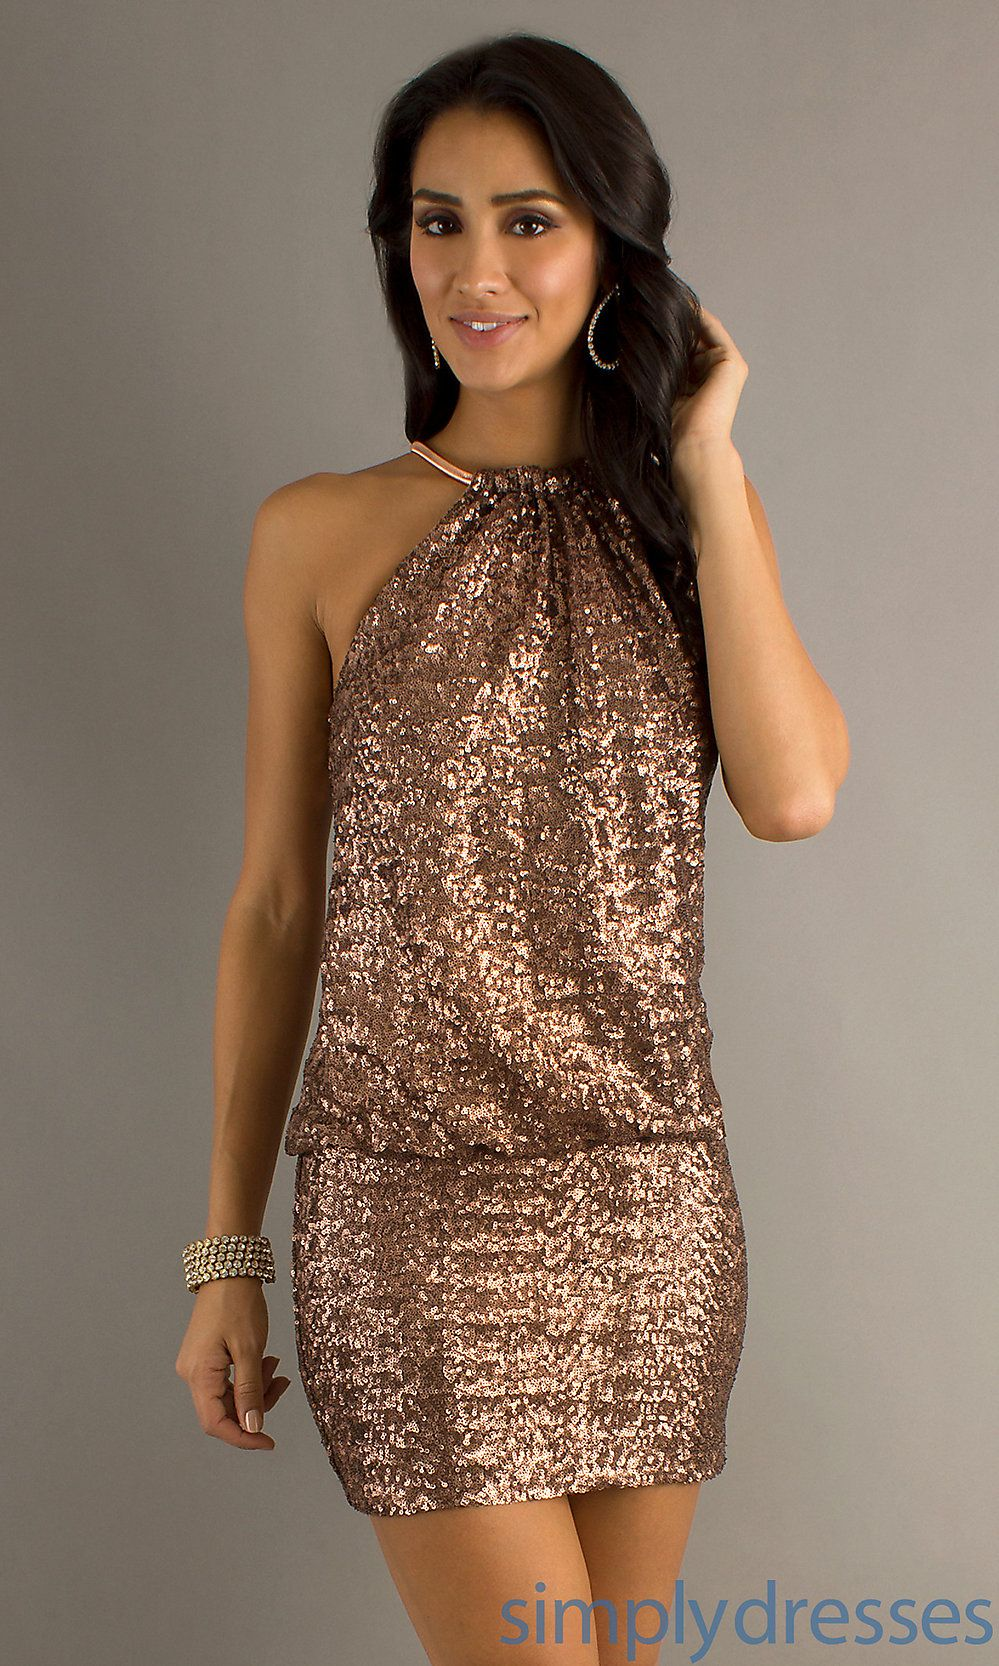 Laundry by shelli segal short sparkly rose gold color dress